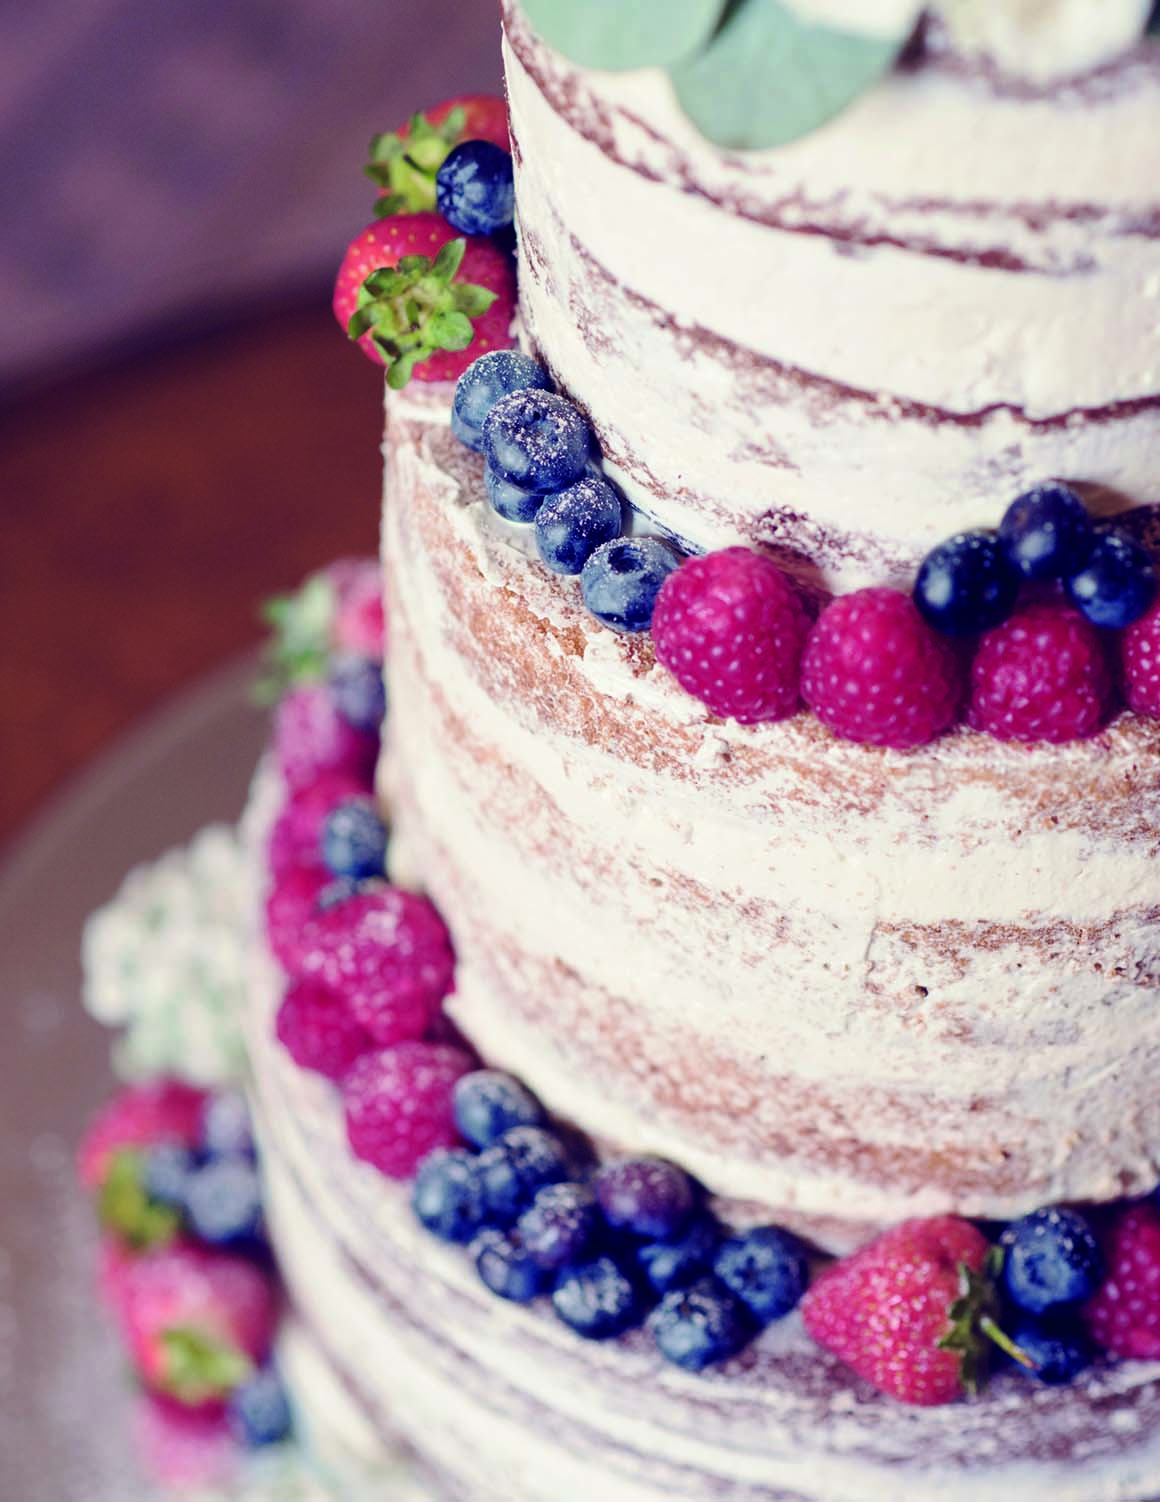 Brockencote Hall Hotel Wedding prices naked cake